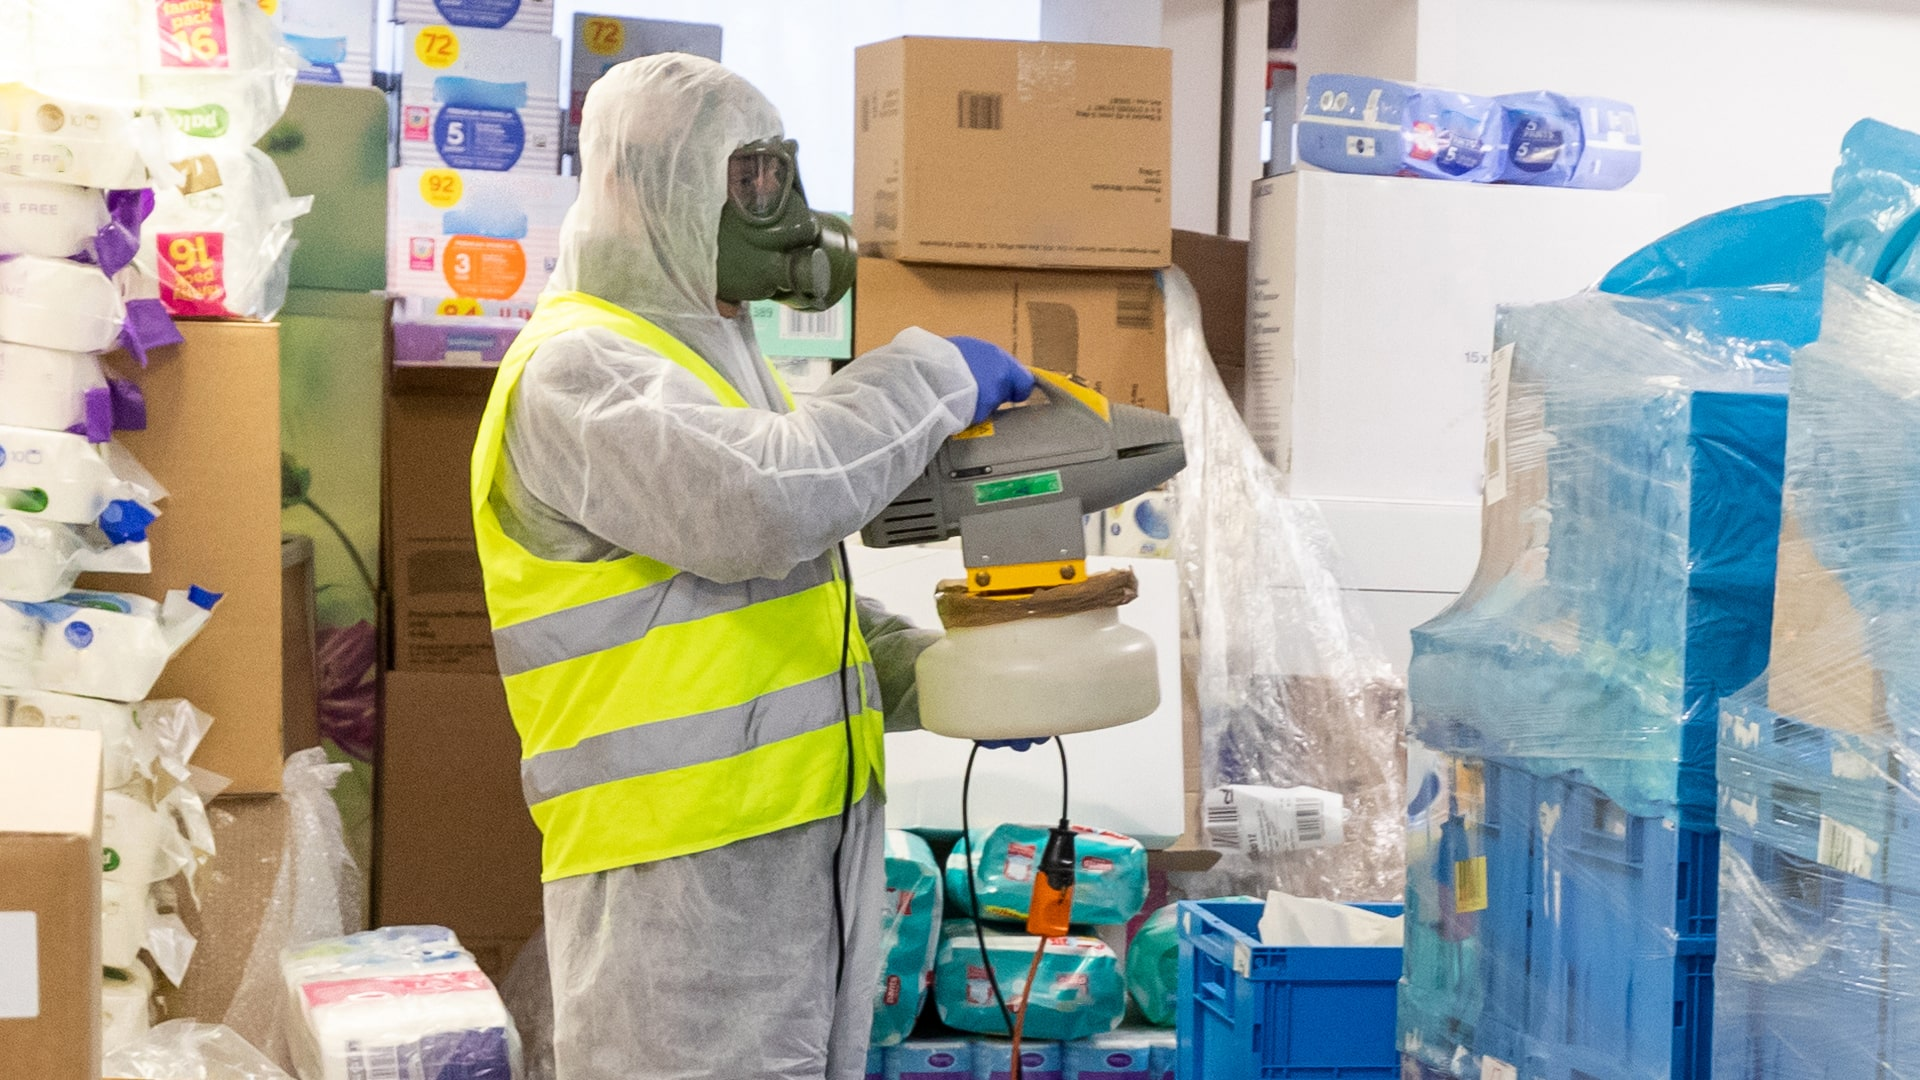 QSS offers Electrostatic disinfecting services